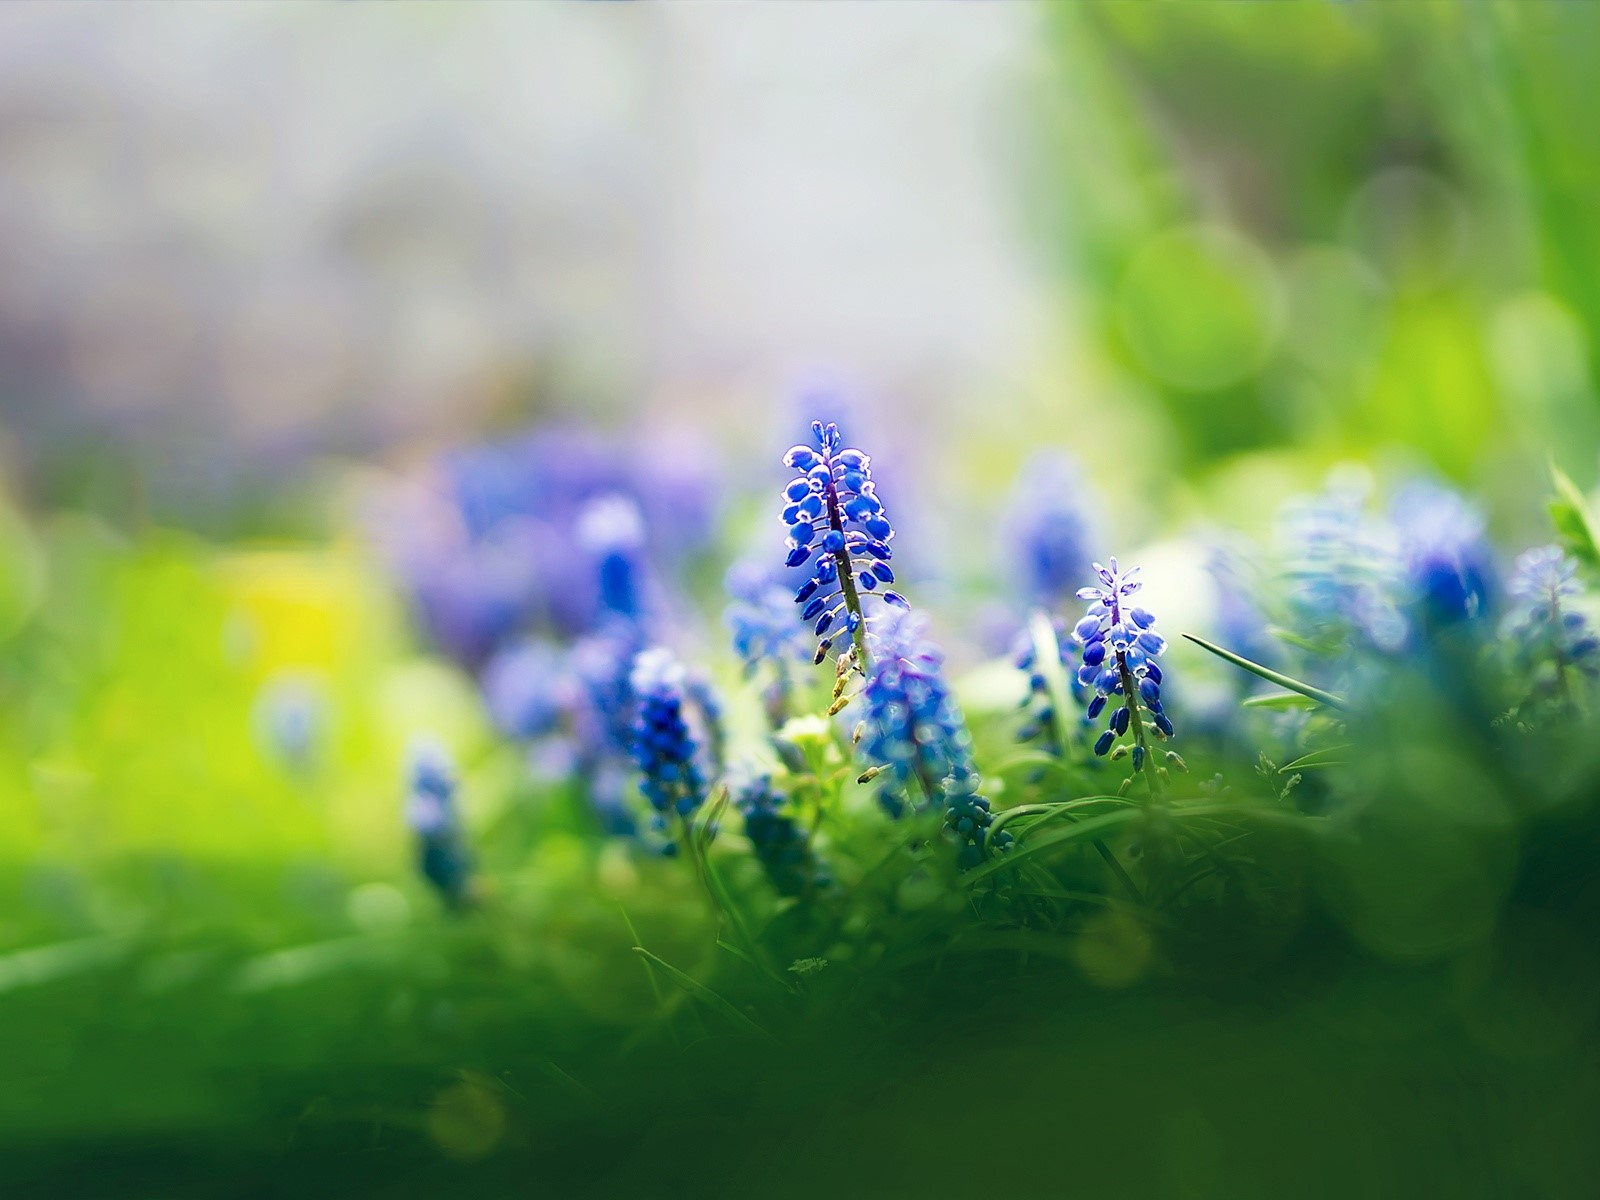 Wallpaper Flores Muscari Images